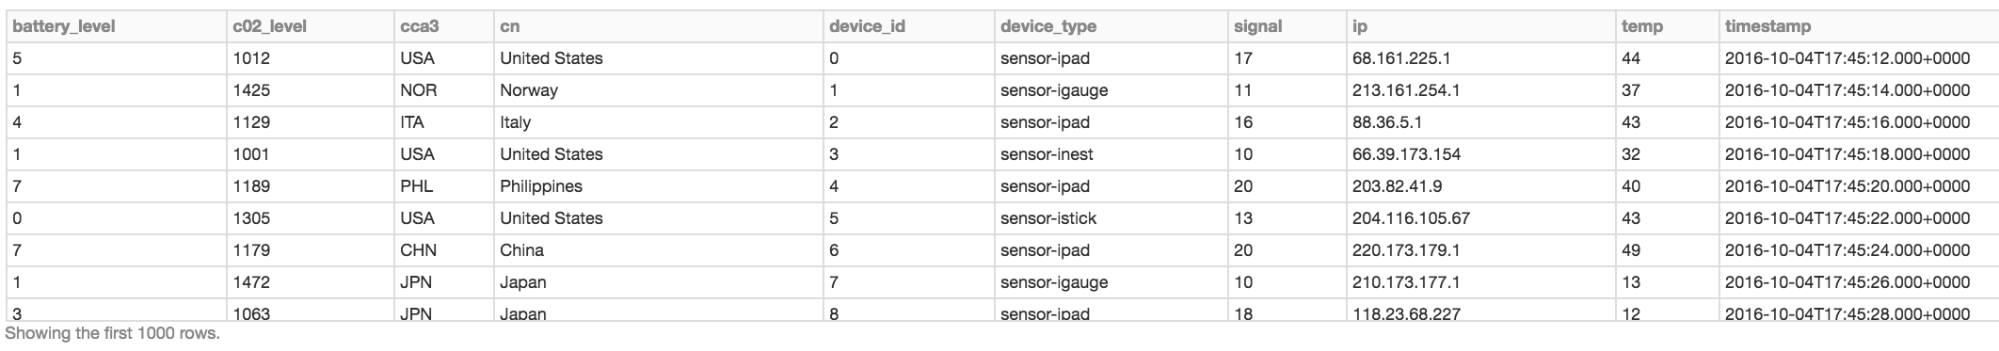 Display the Devices DataFrame as a table.